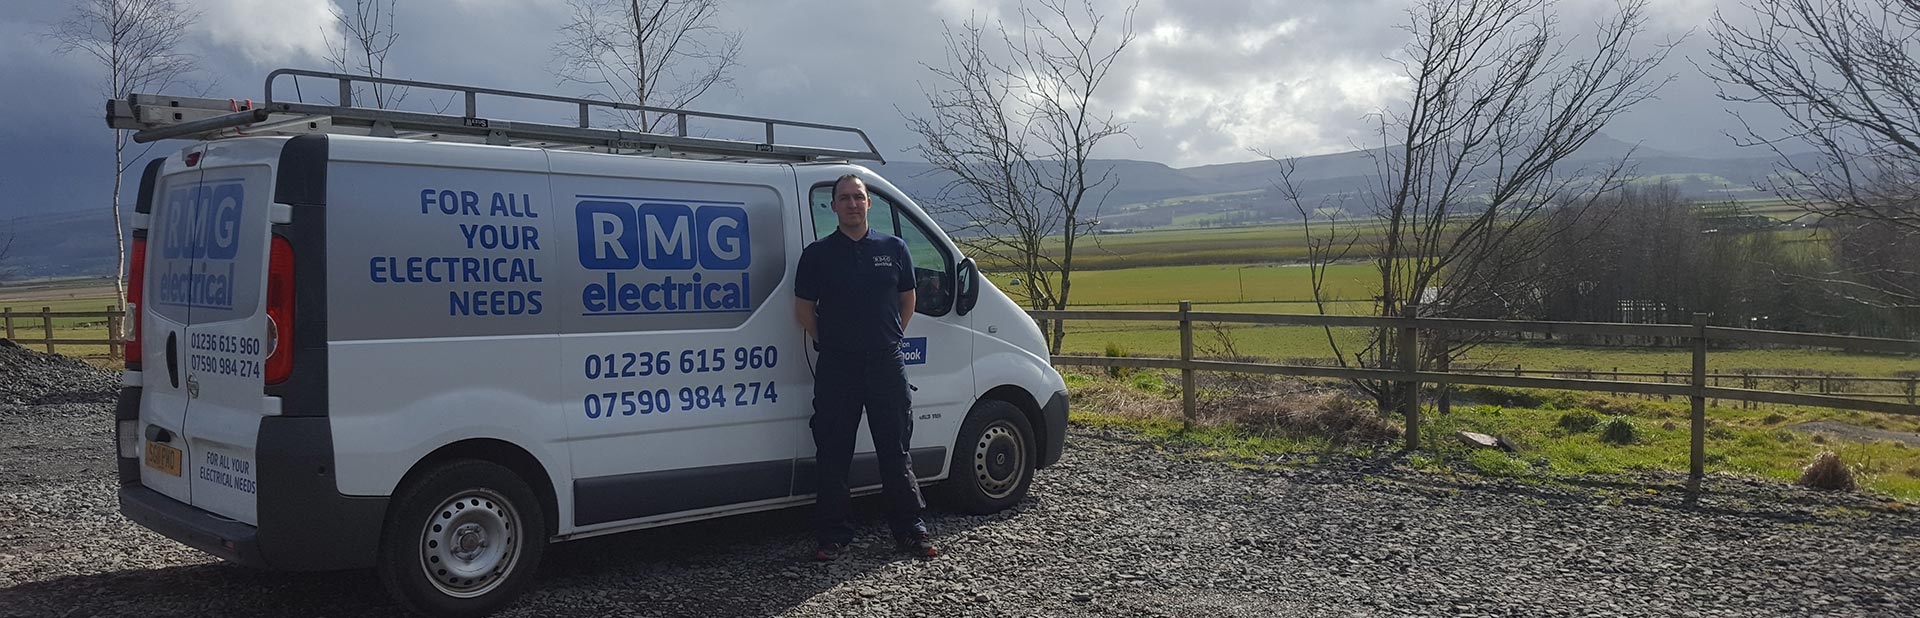 RMG Electrical